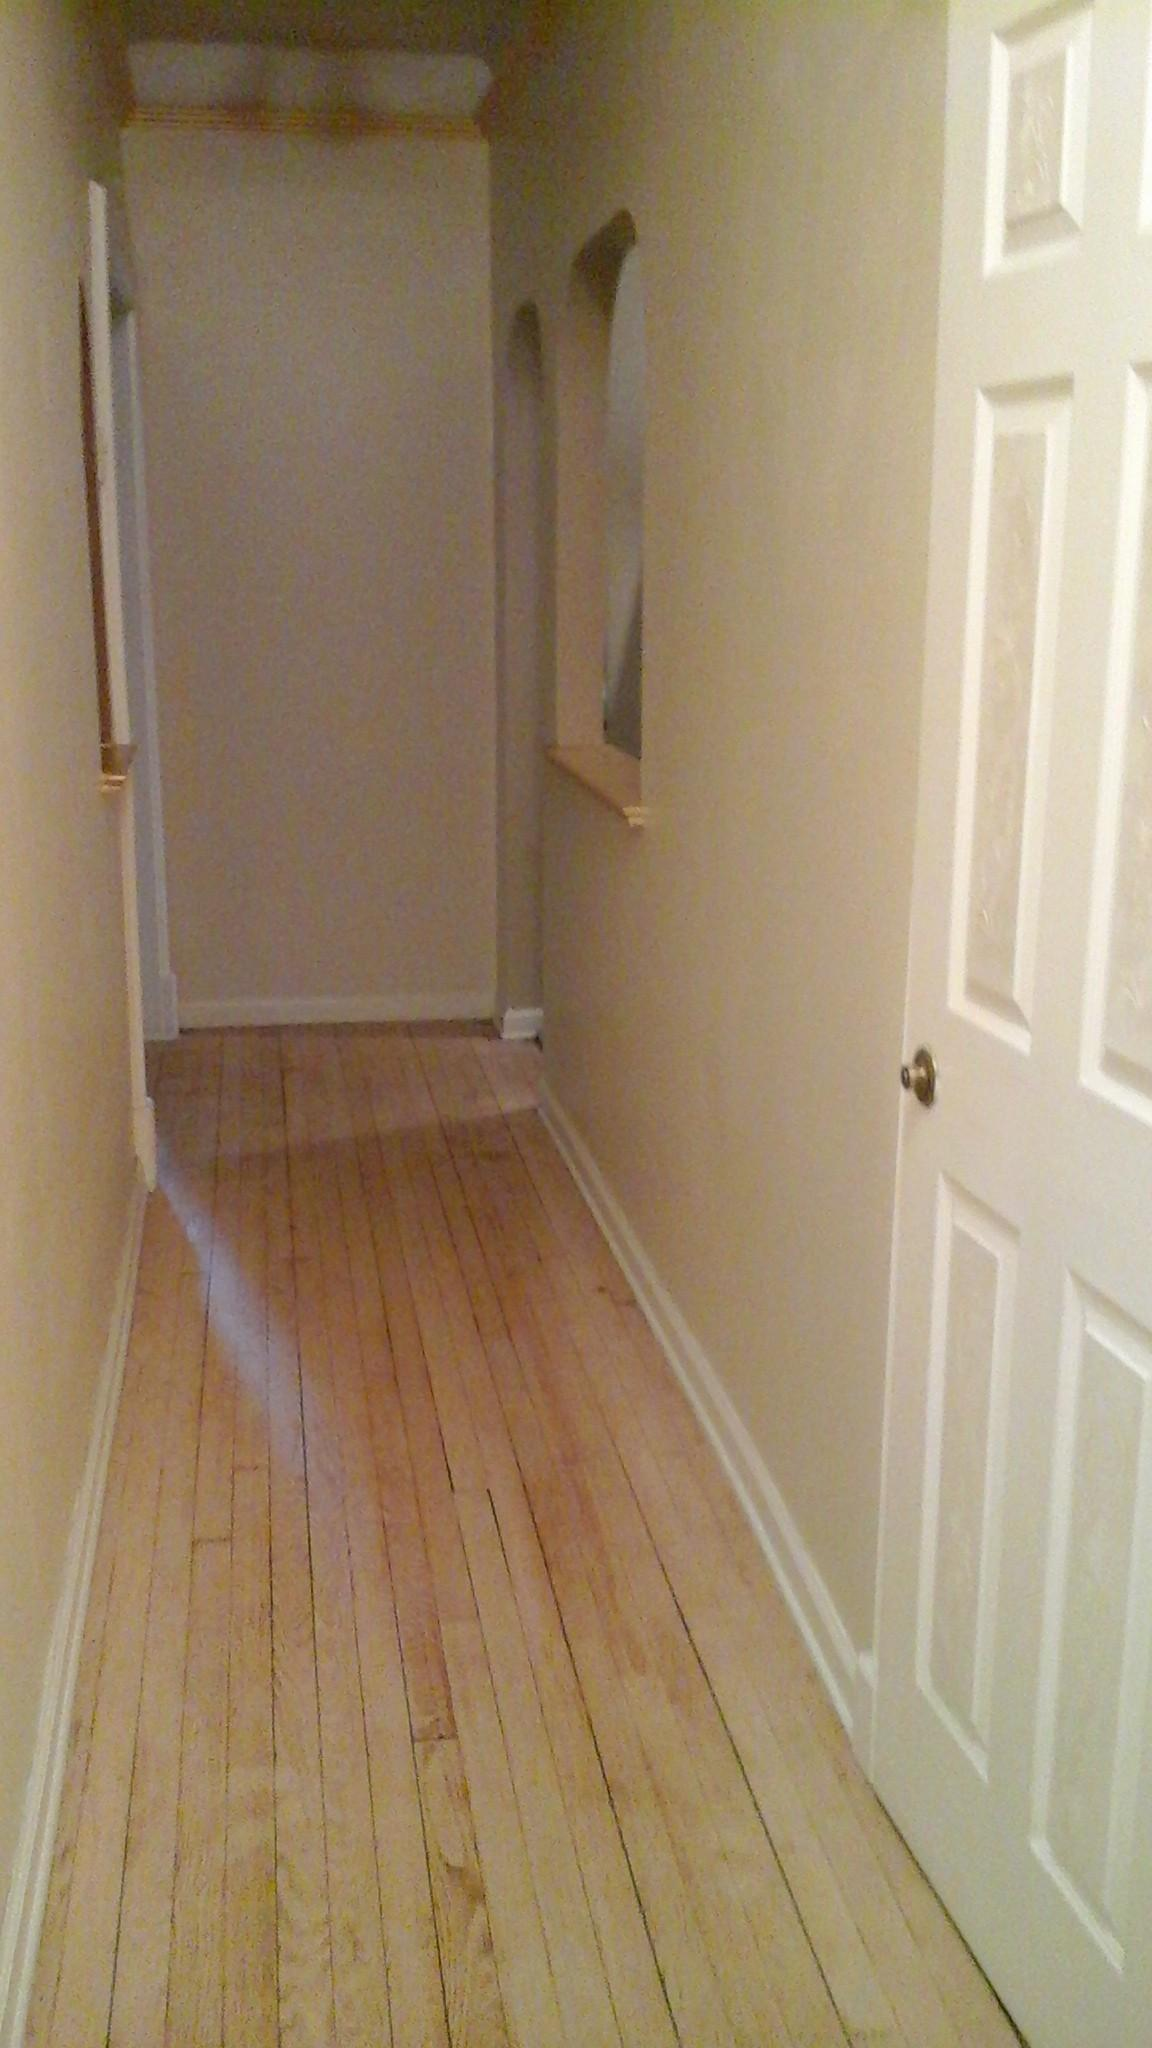 Townhouse for rent in West New York for $ photo #1